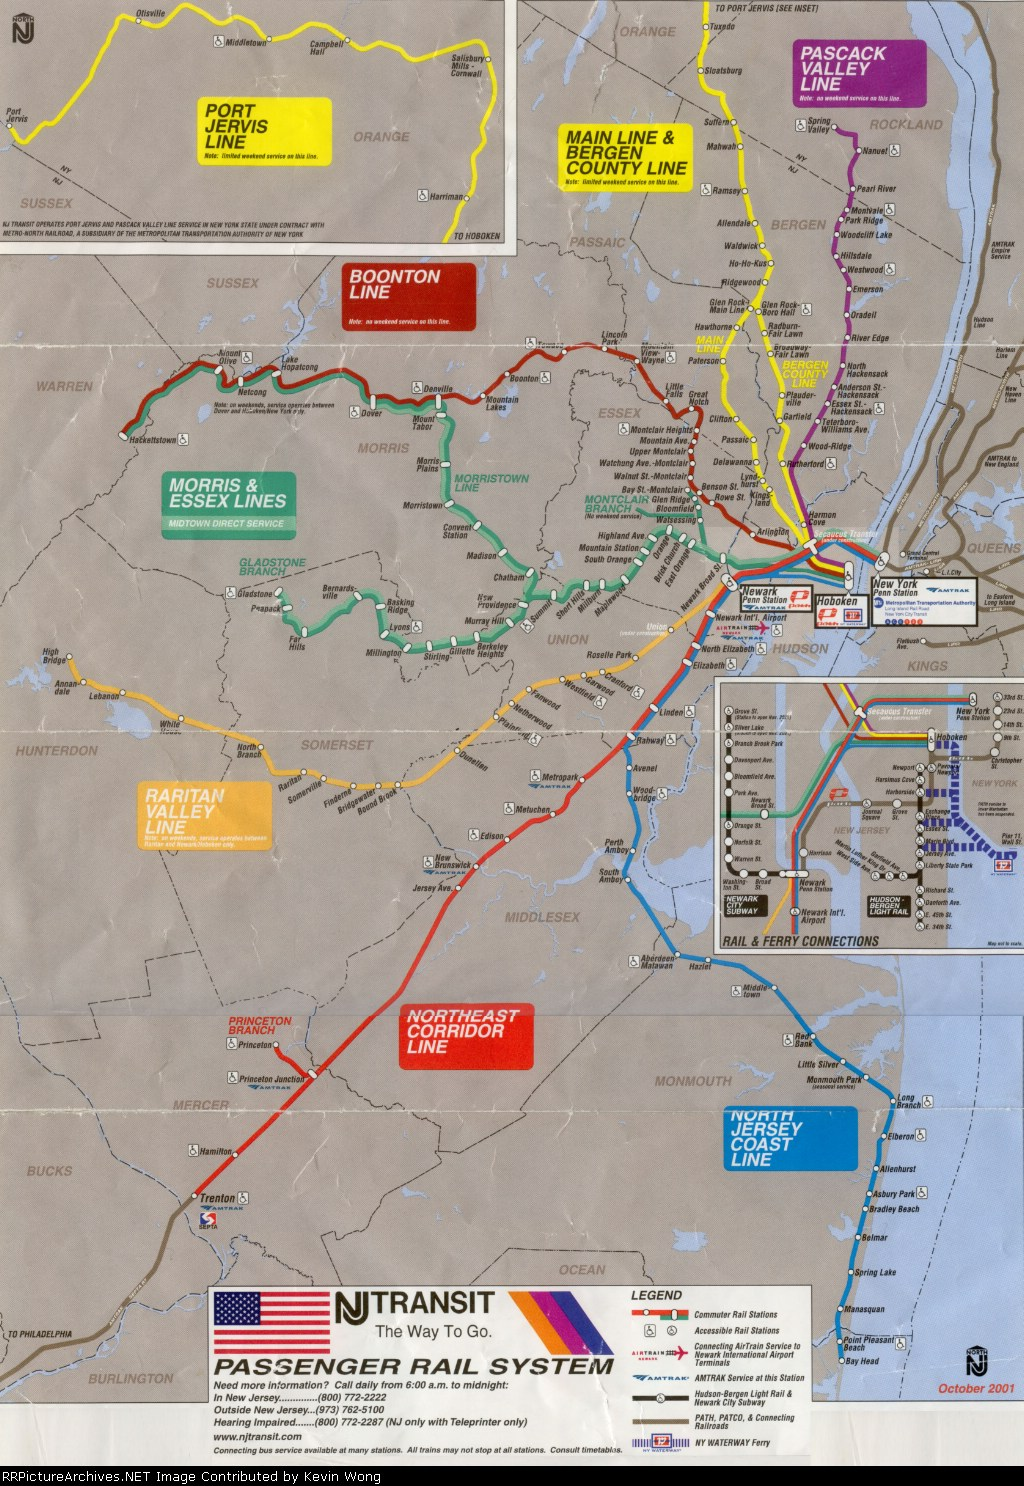 October 2001 NJ Transit map